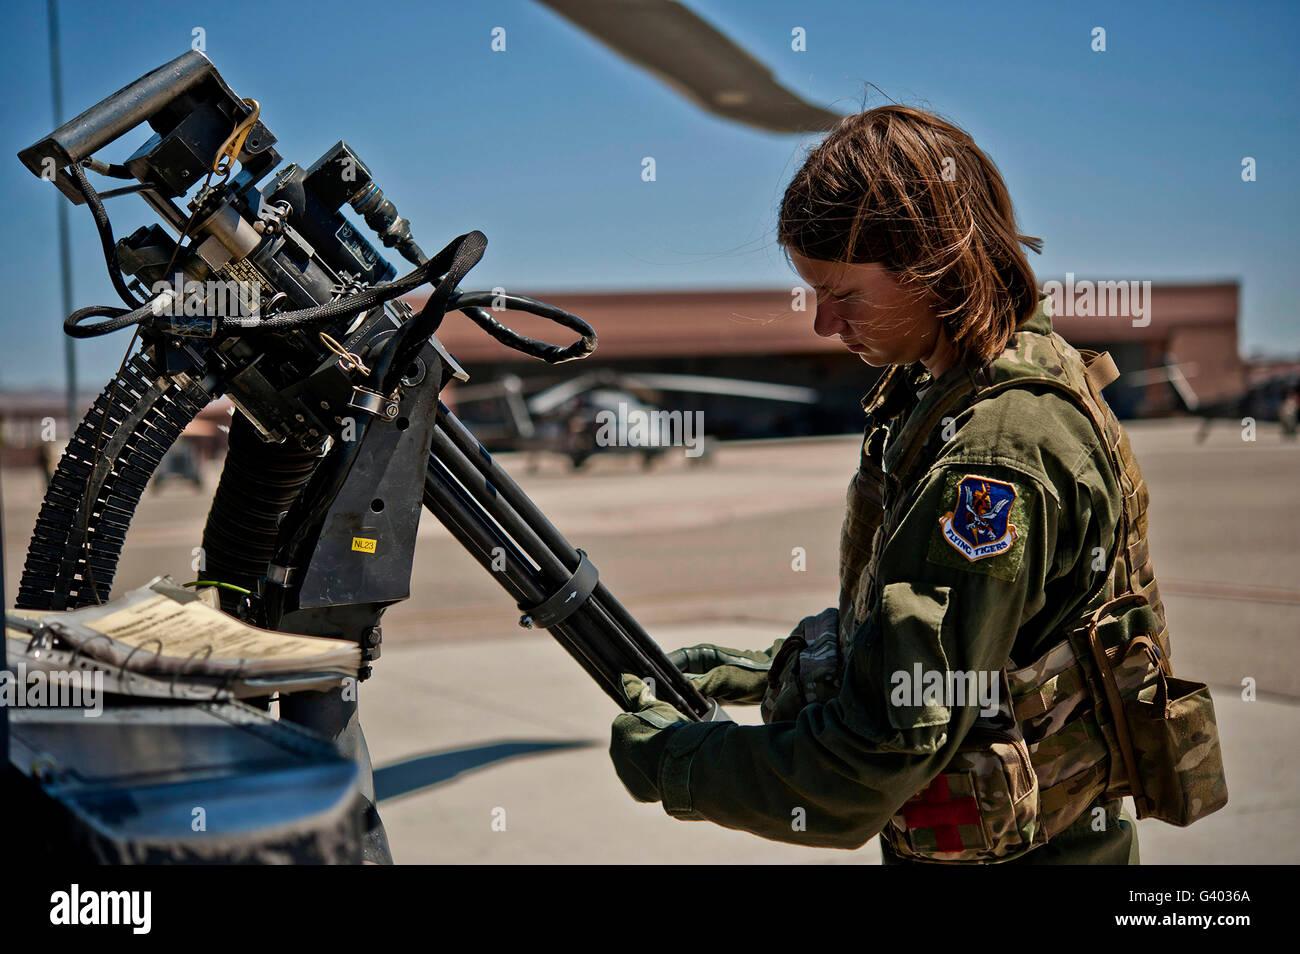 Airman examines the barrels of a GAU-2 mini gun on an HH-60 Pave Hawk. - Stock Image